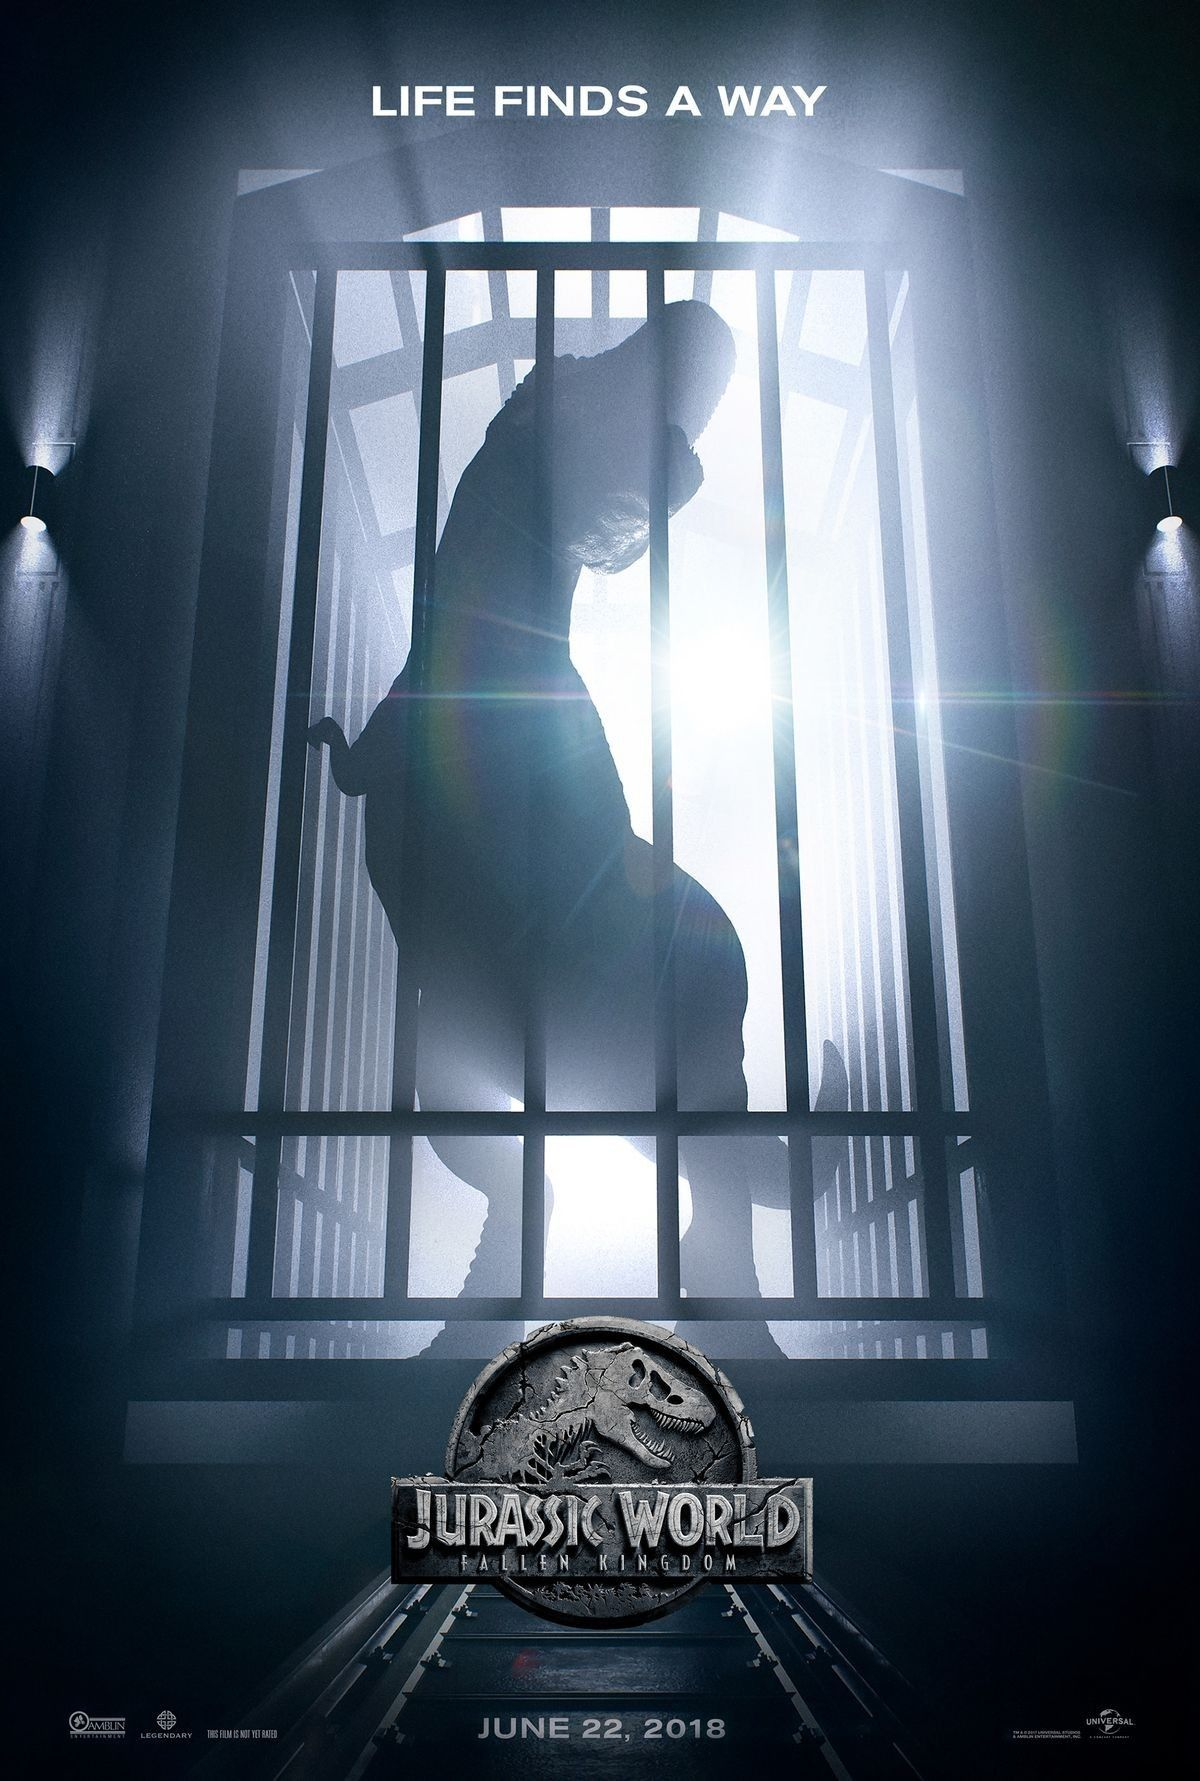 And Now The Cell Block Tango With Images Jurassic World Poster